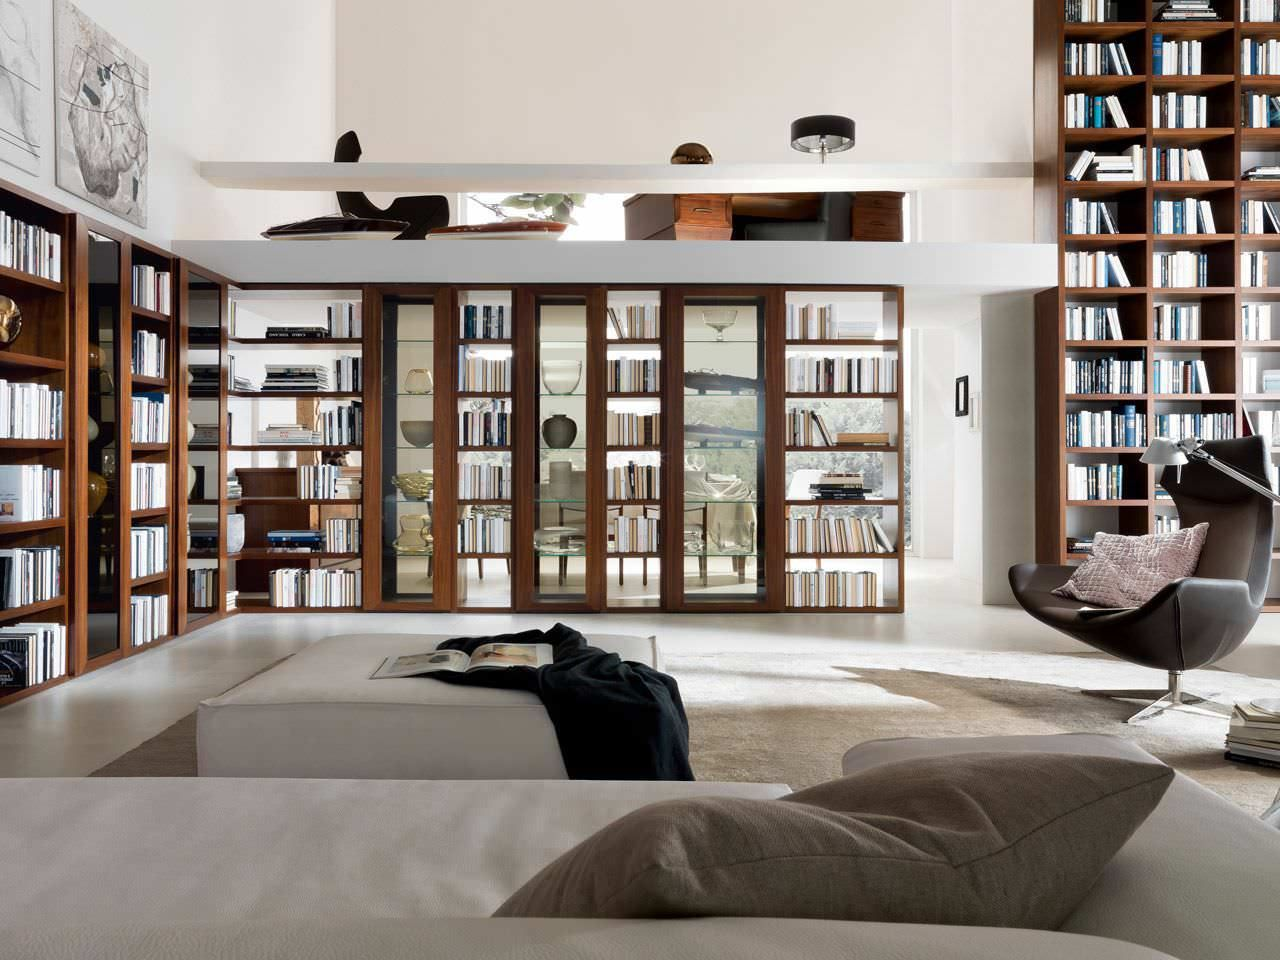 images about bookshelves home libraries on pinterest home library design ideas - Home Library Design Ideas